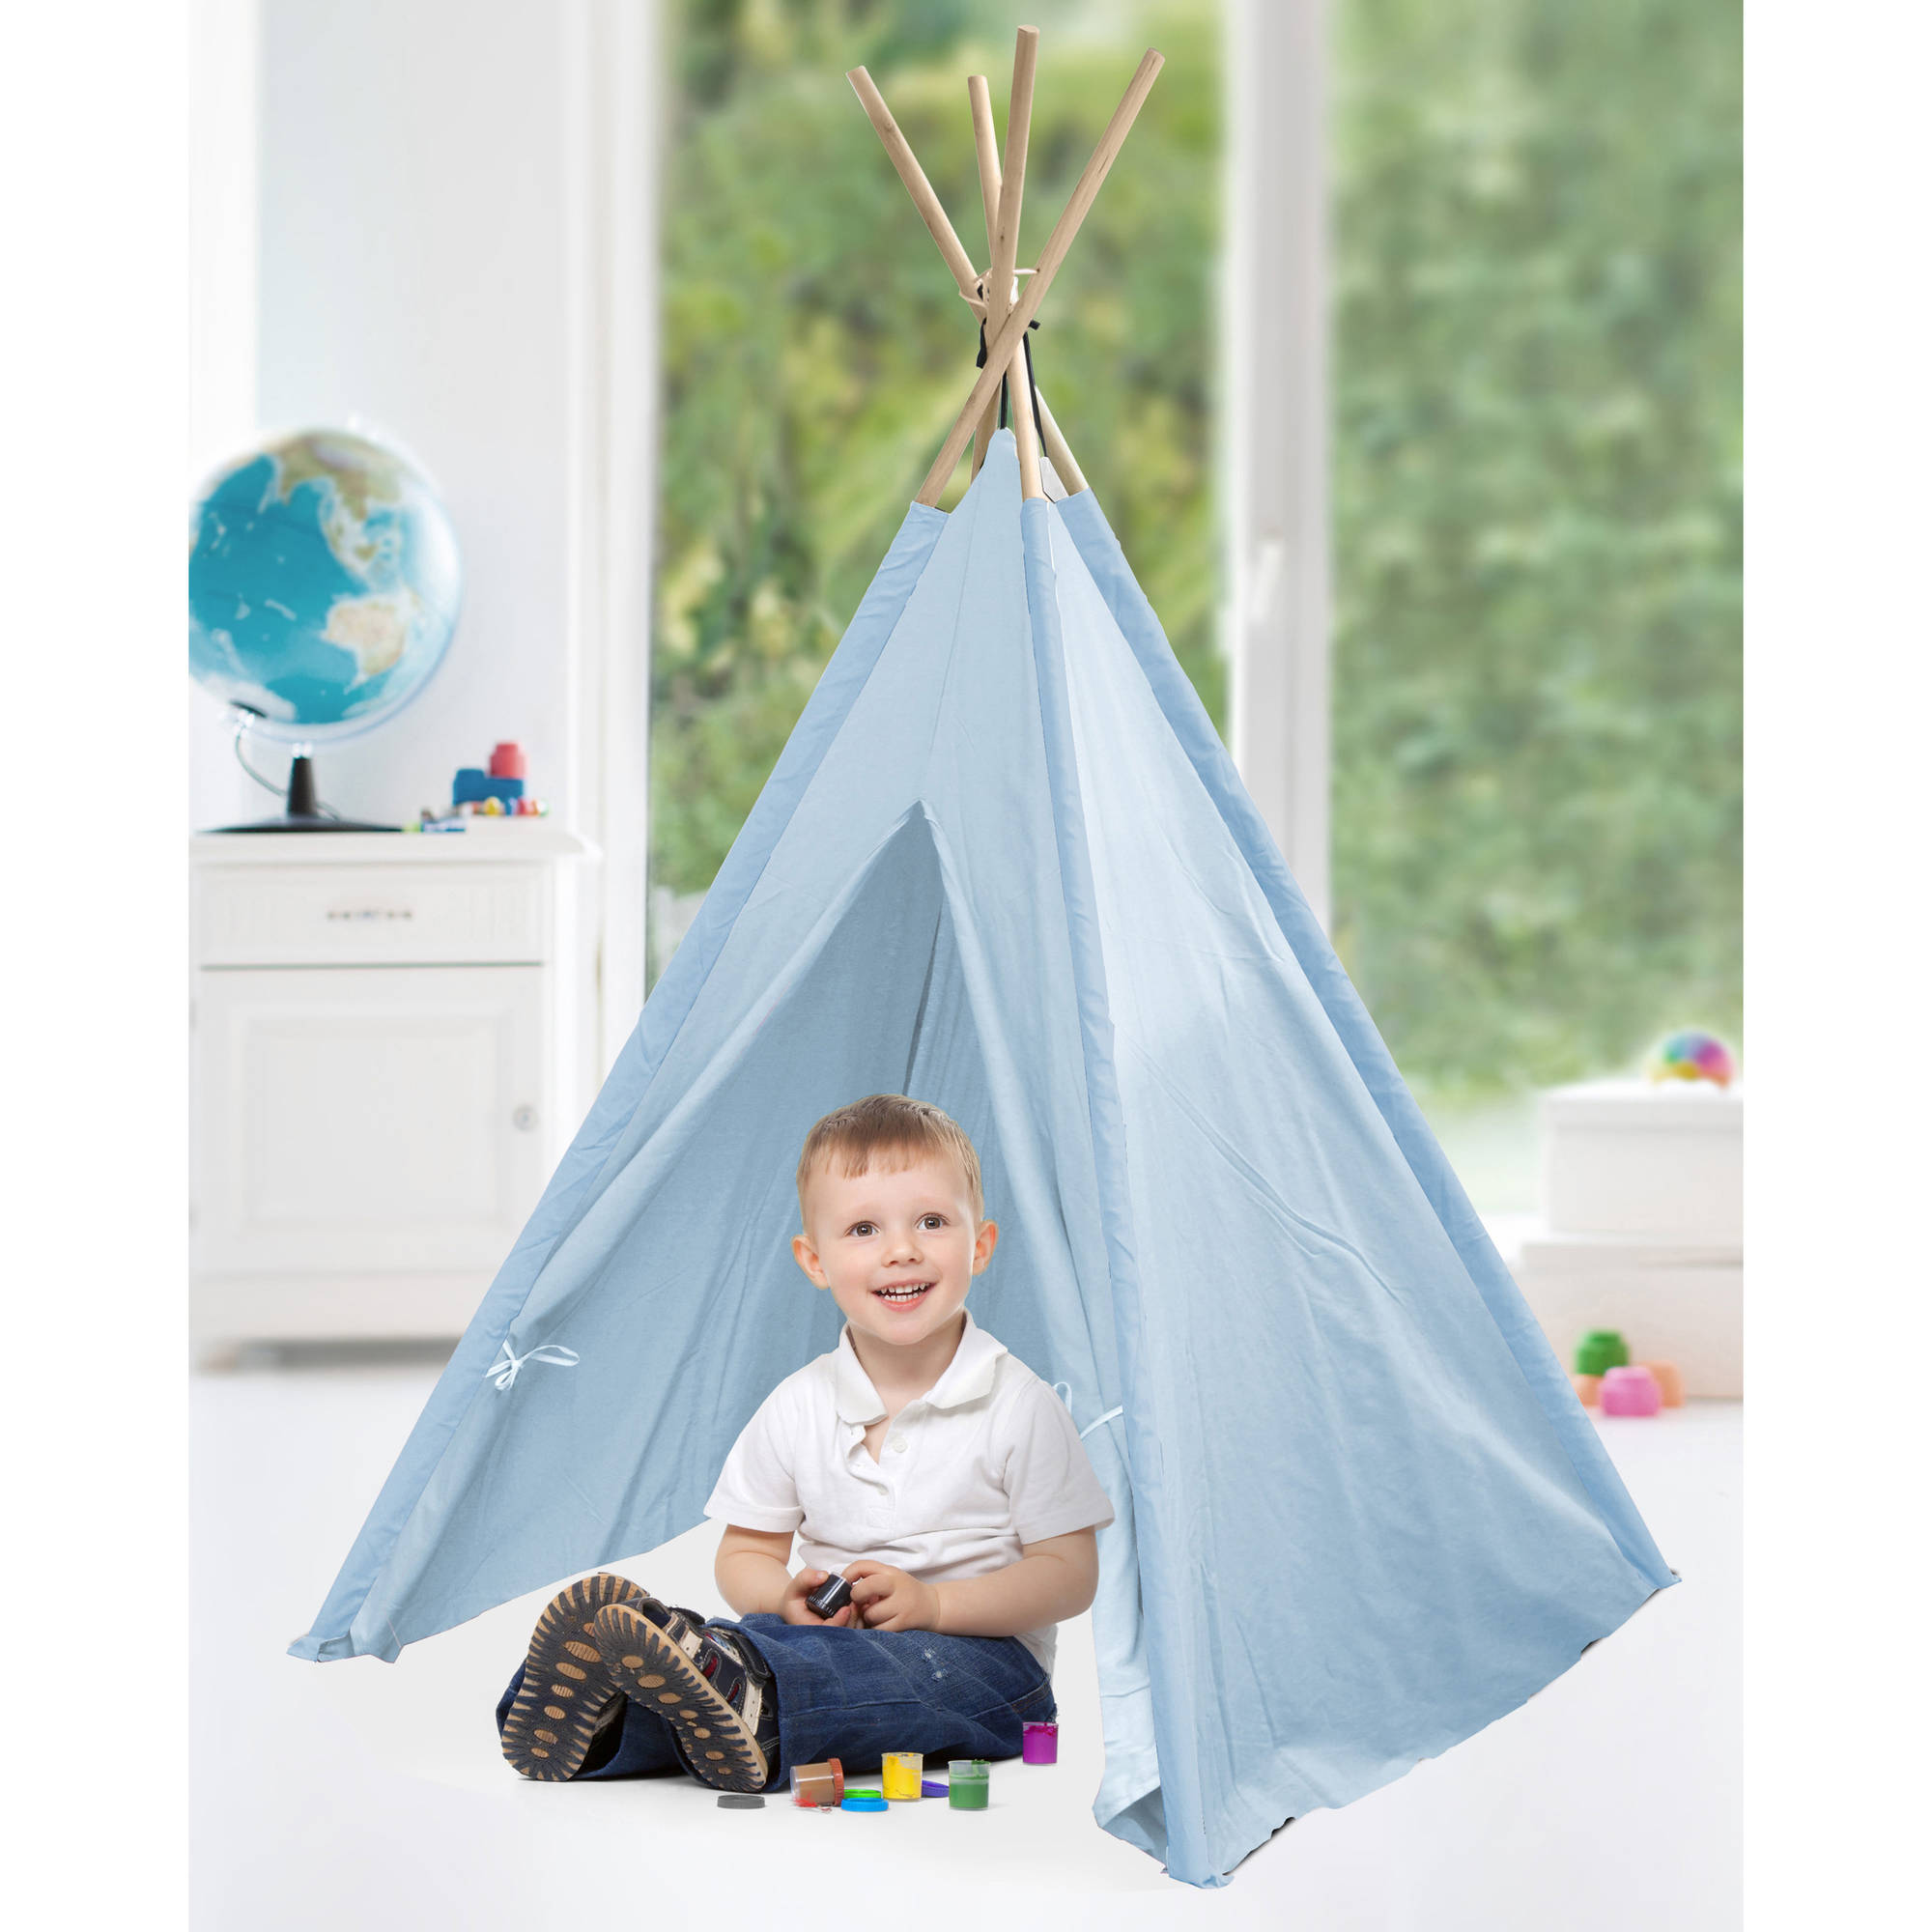 American Kids Awesome Tee-Pee Tent, Light Blue